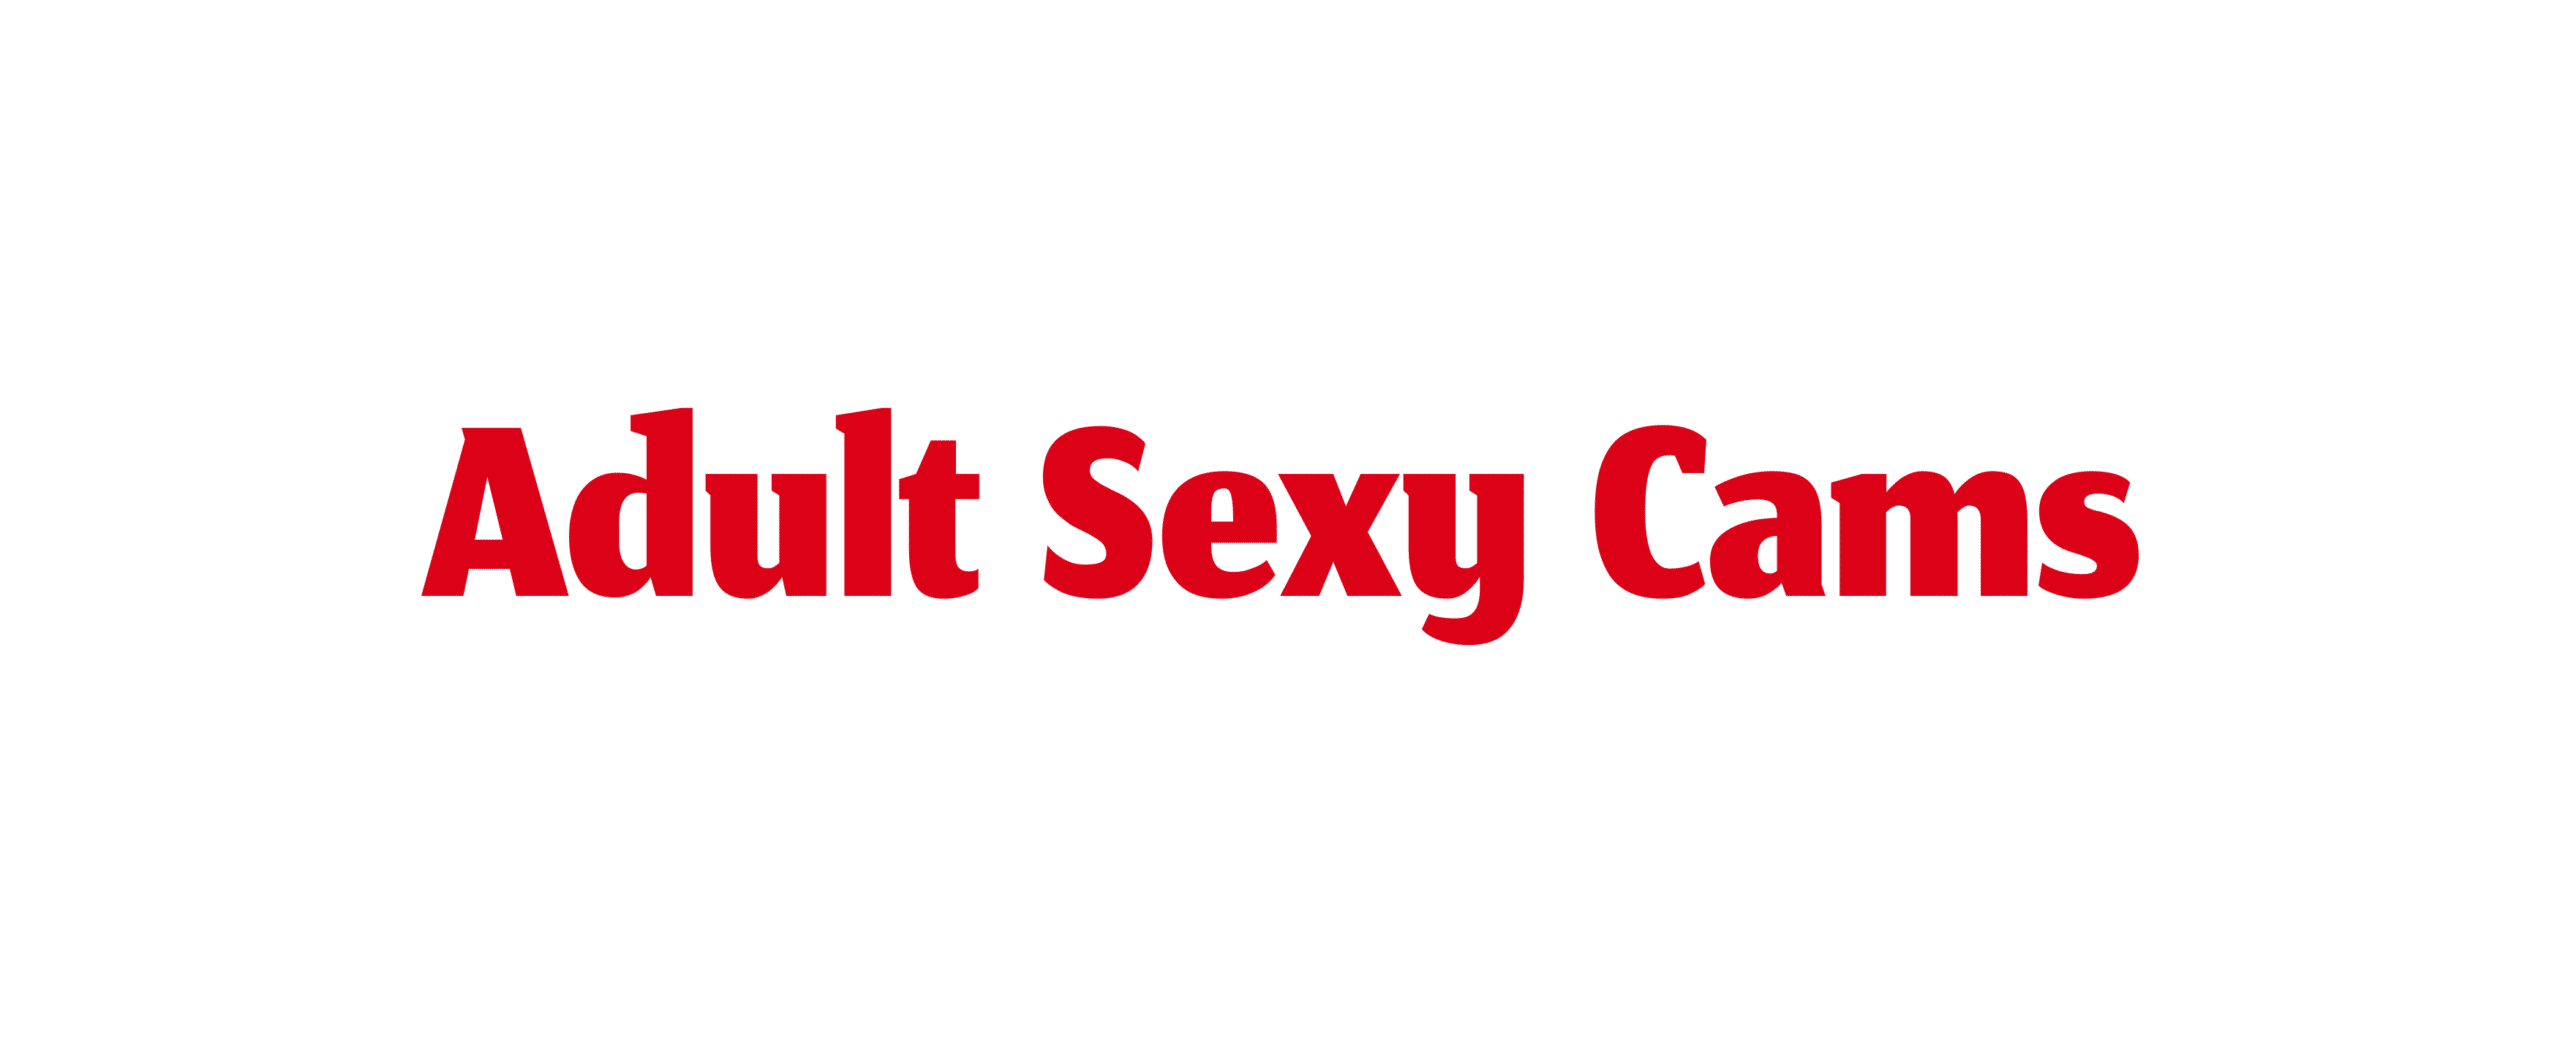 Adult Sexy Cams